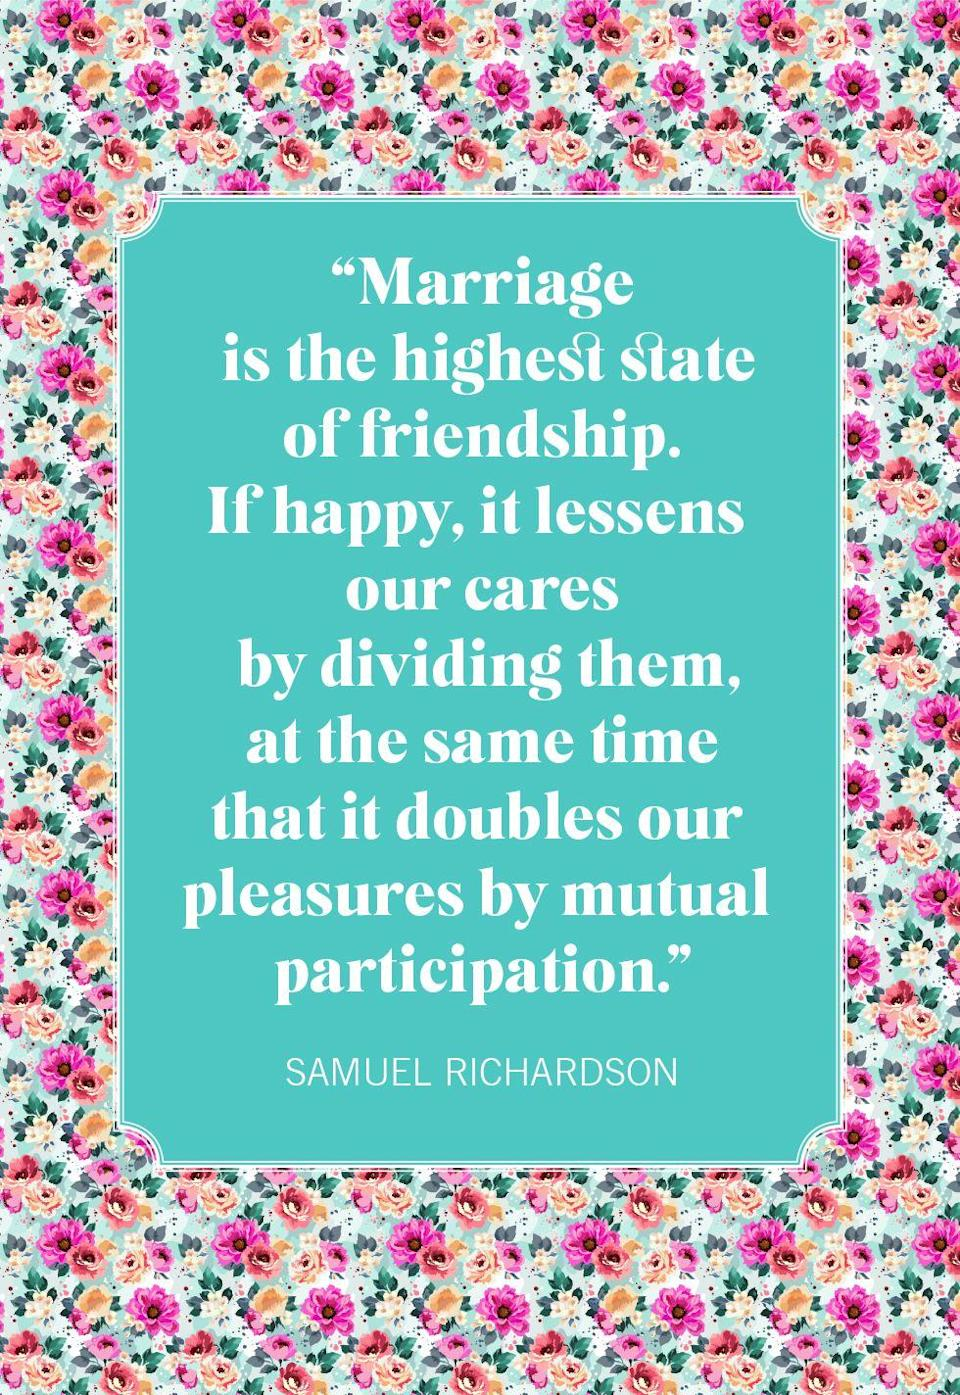 """<p>""""Marriage is the highest state of friendship. If happy, it lessens our cares by dividing them, at the same time that it doubles our pleasures by mutual participation.""""</p>"""